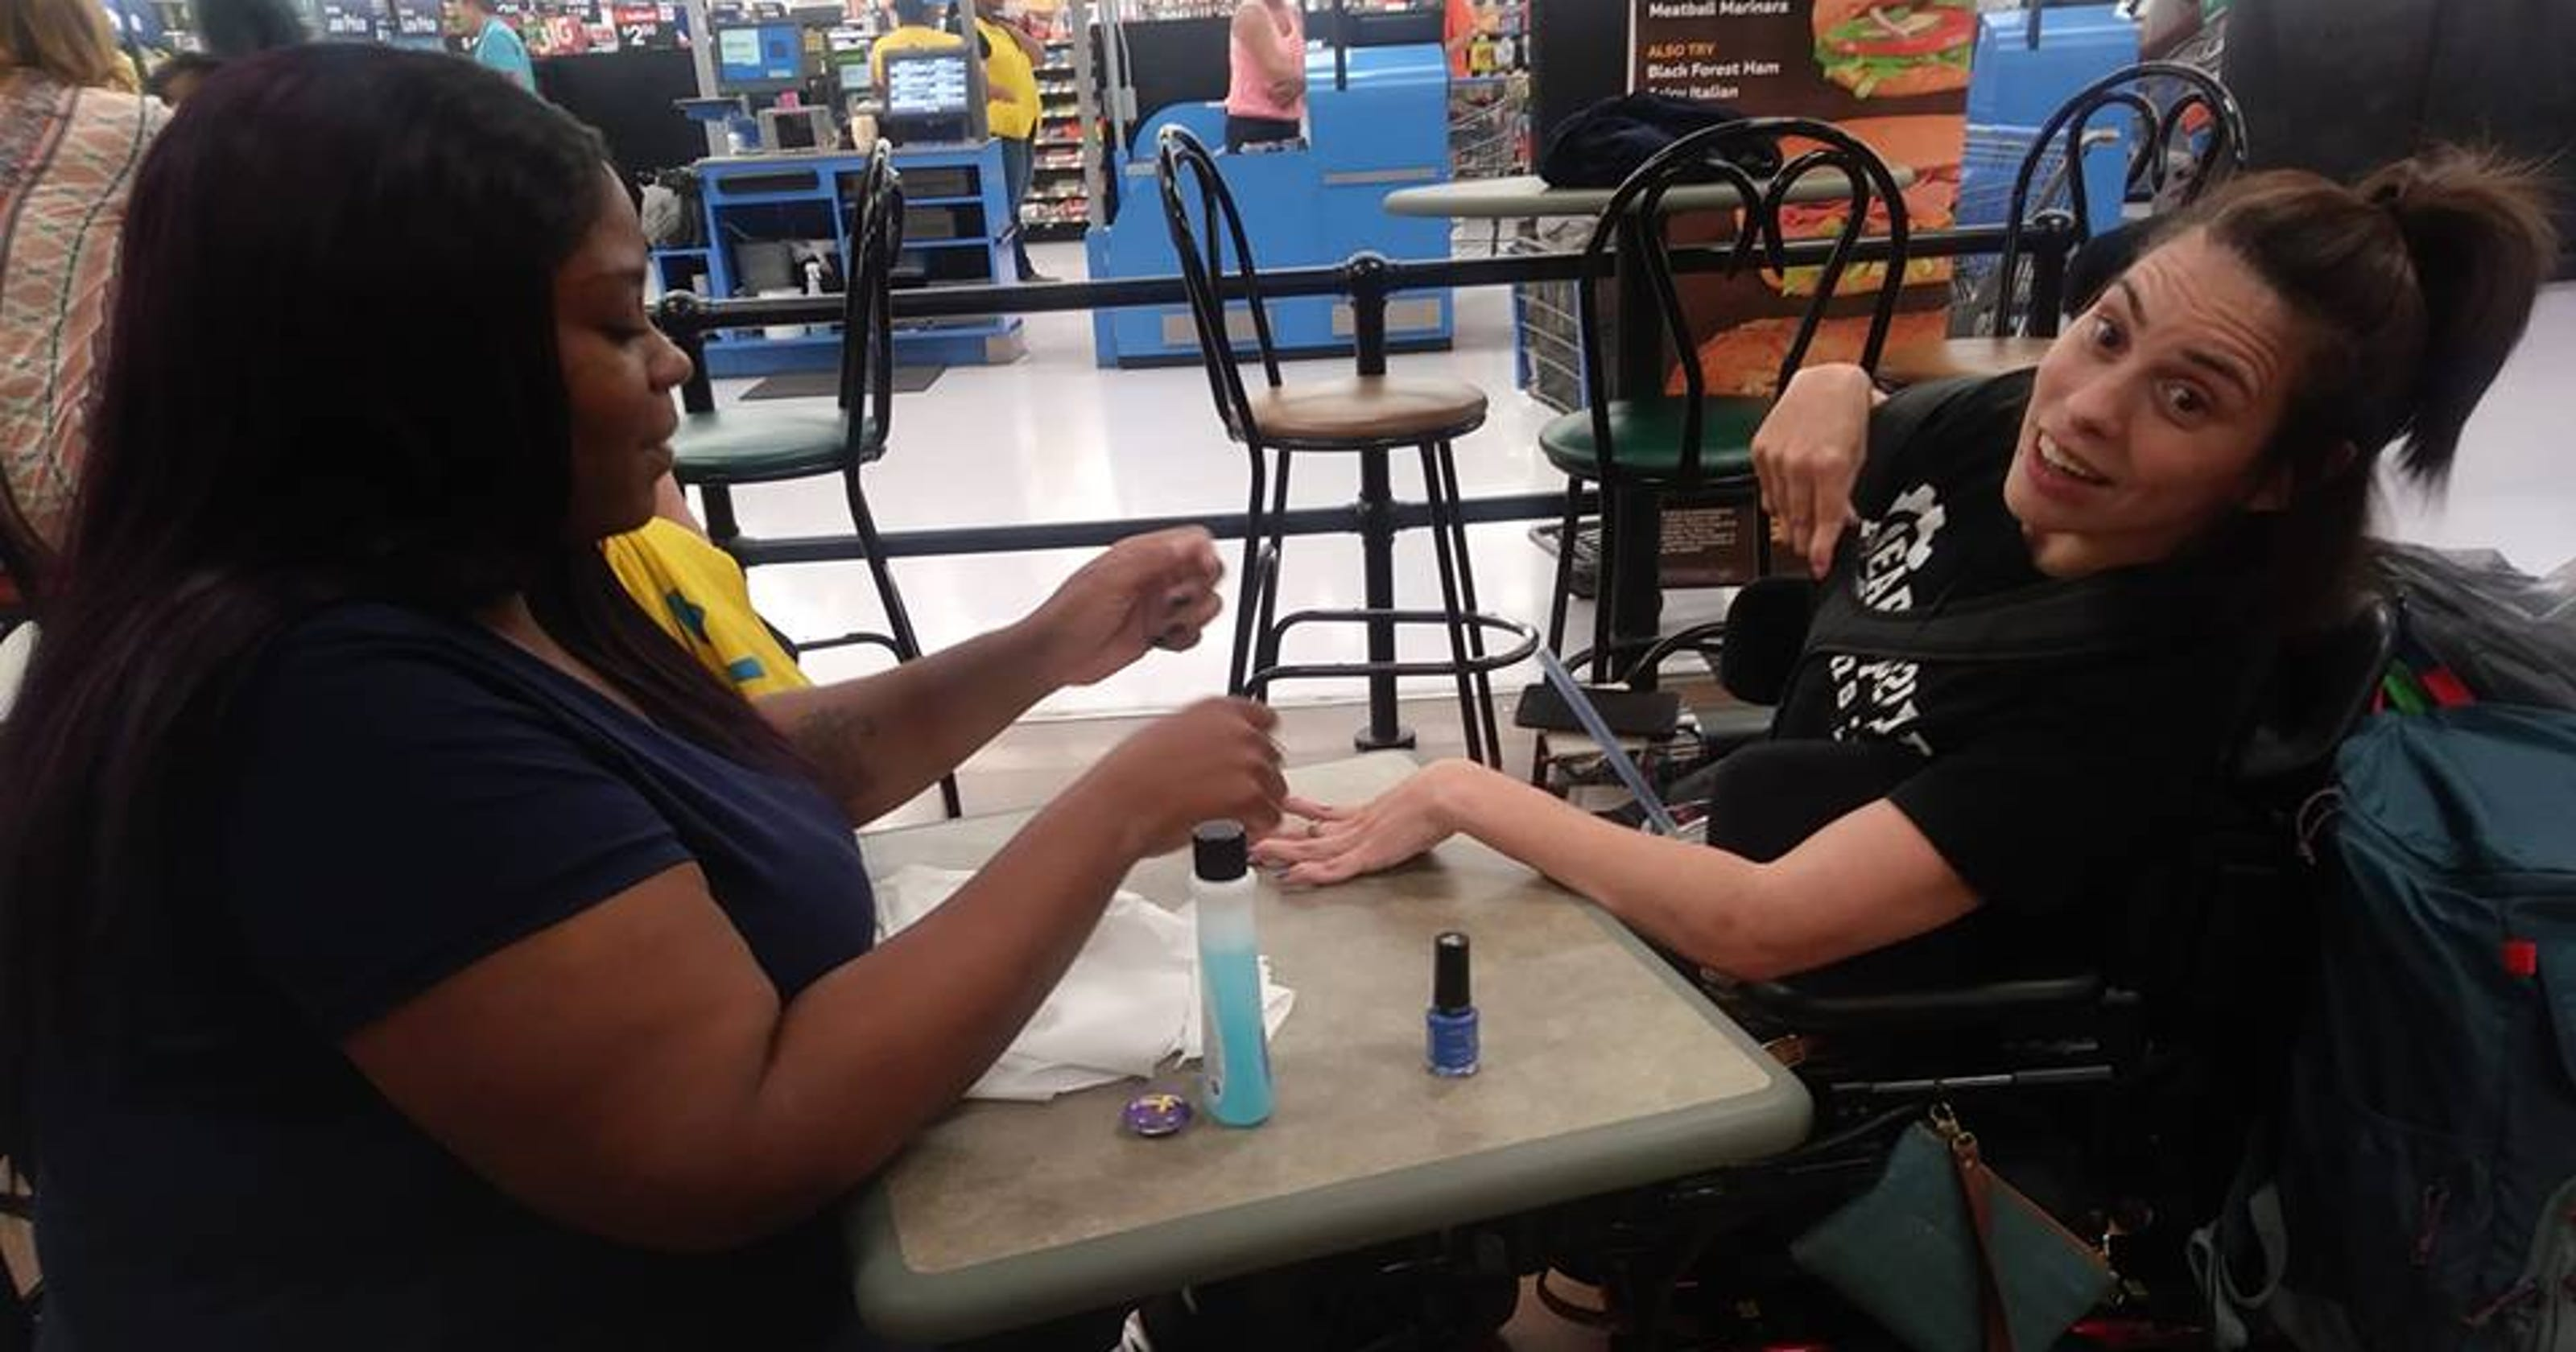 Walmart Cashier Paints Nails Of Woman With Disability On Break